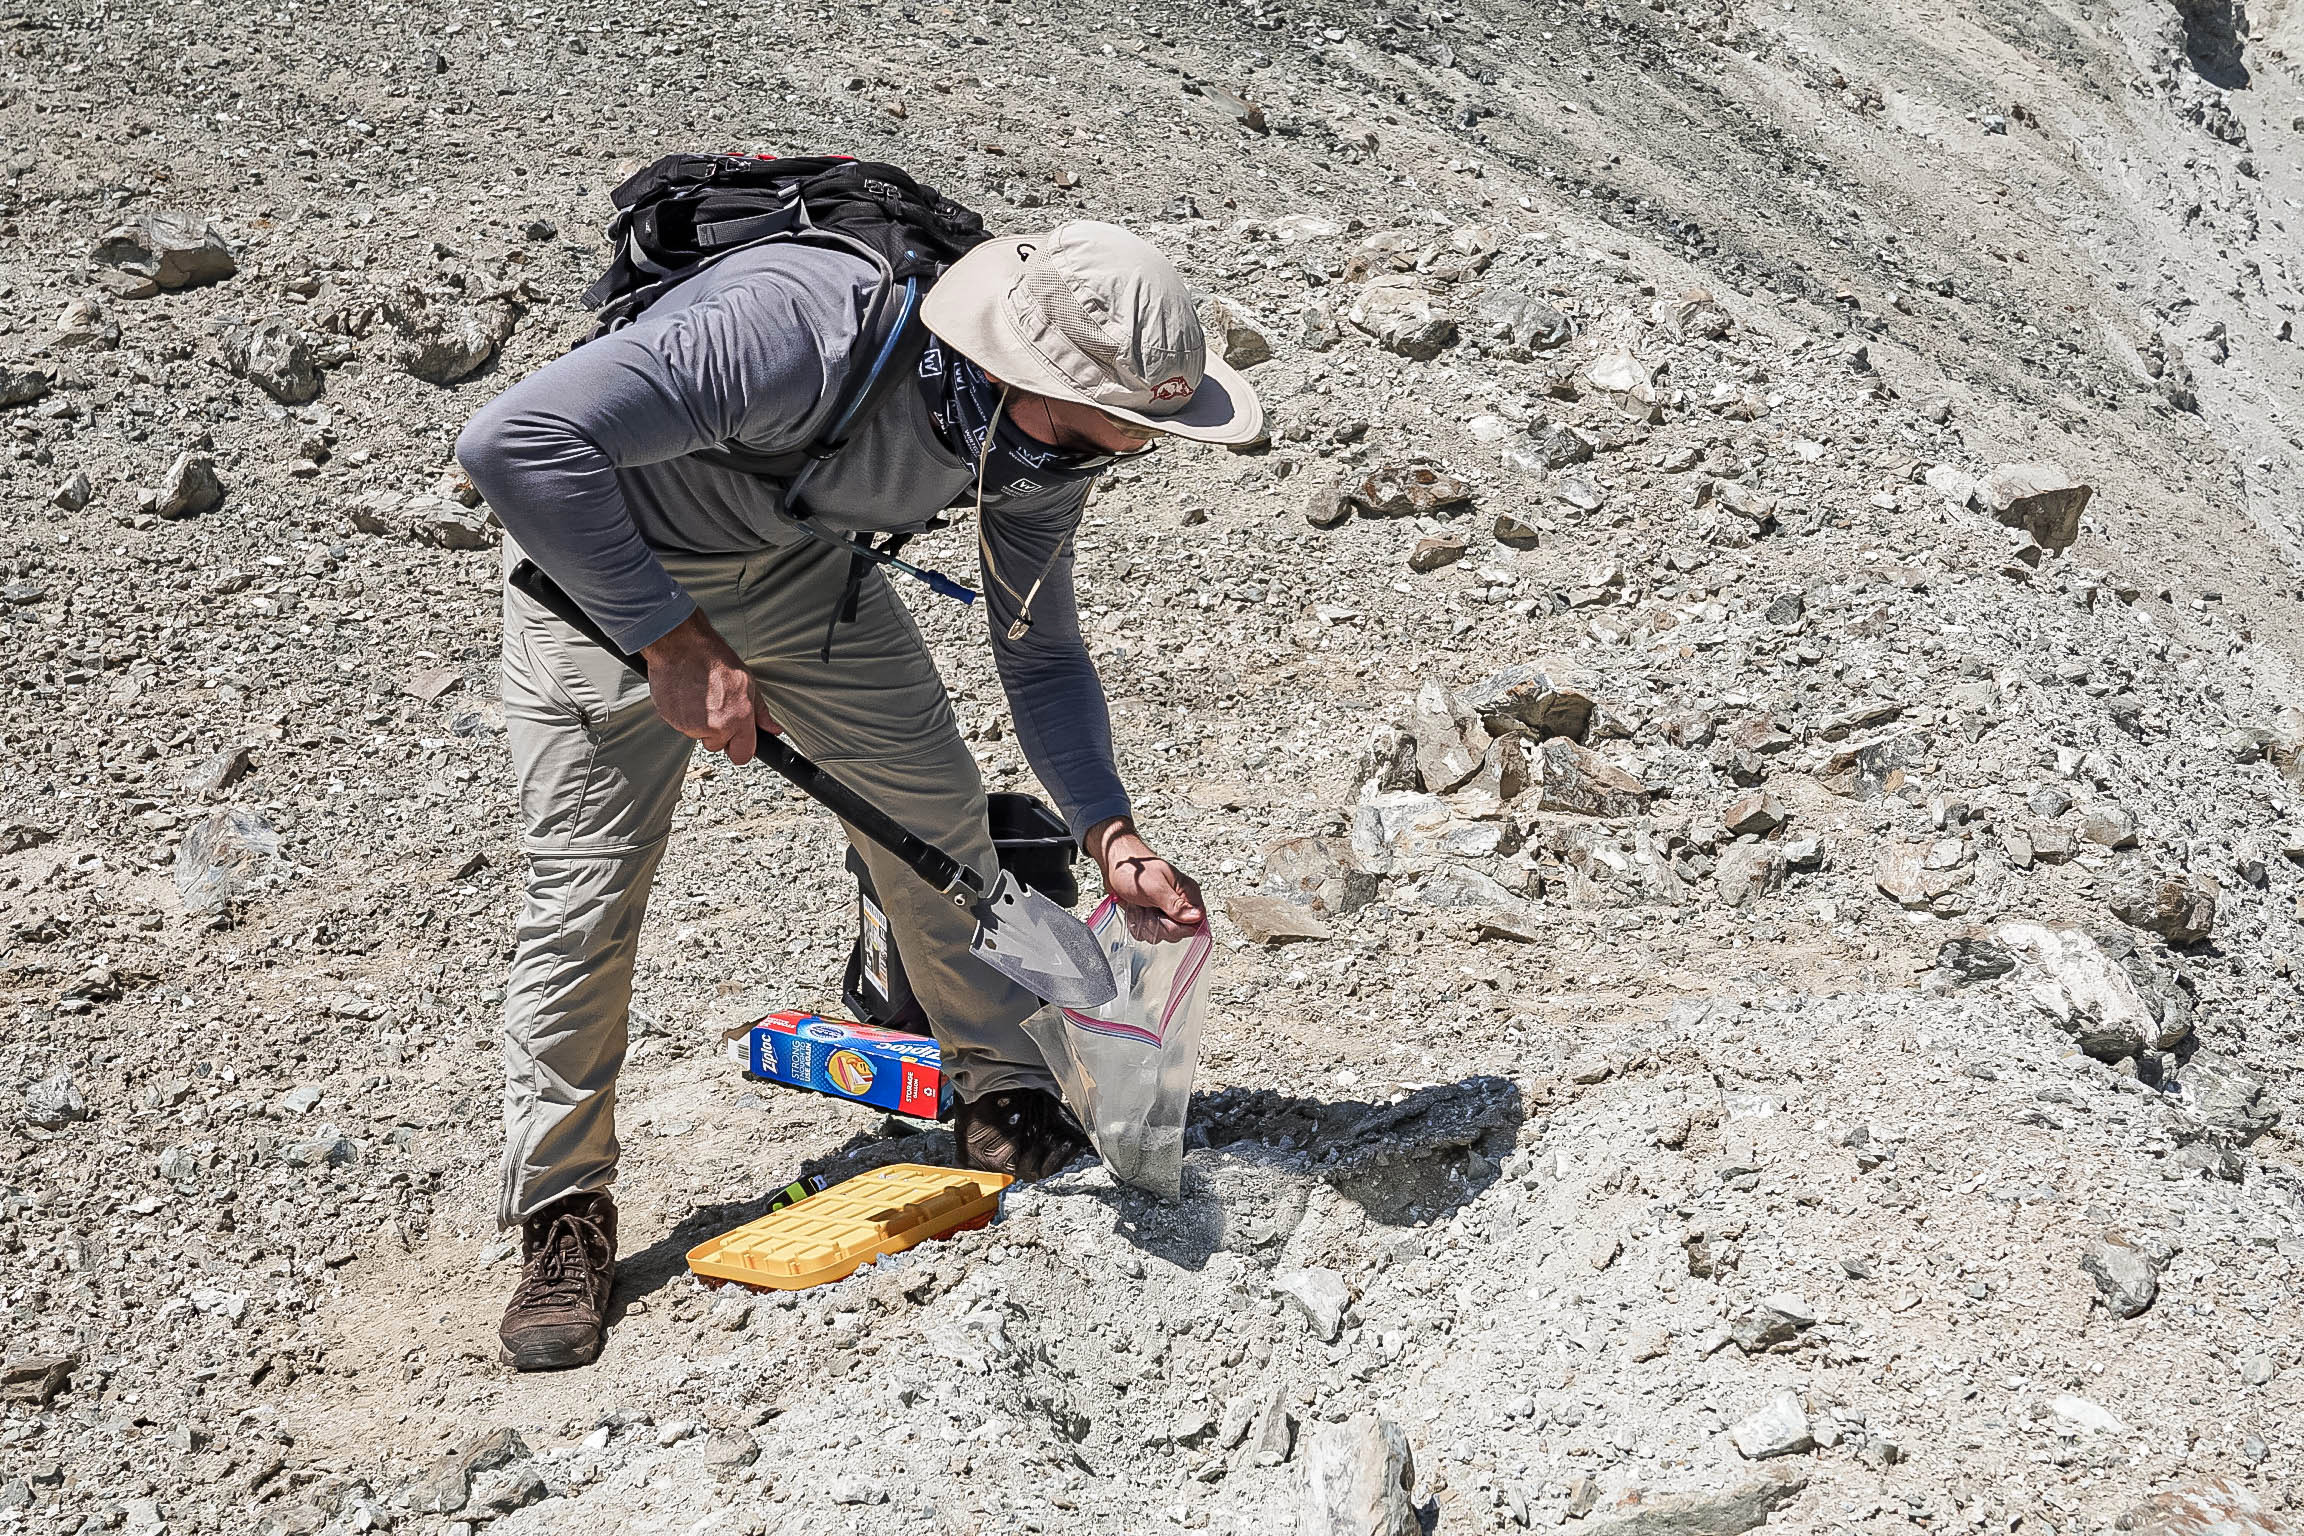 collecting minerals